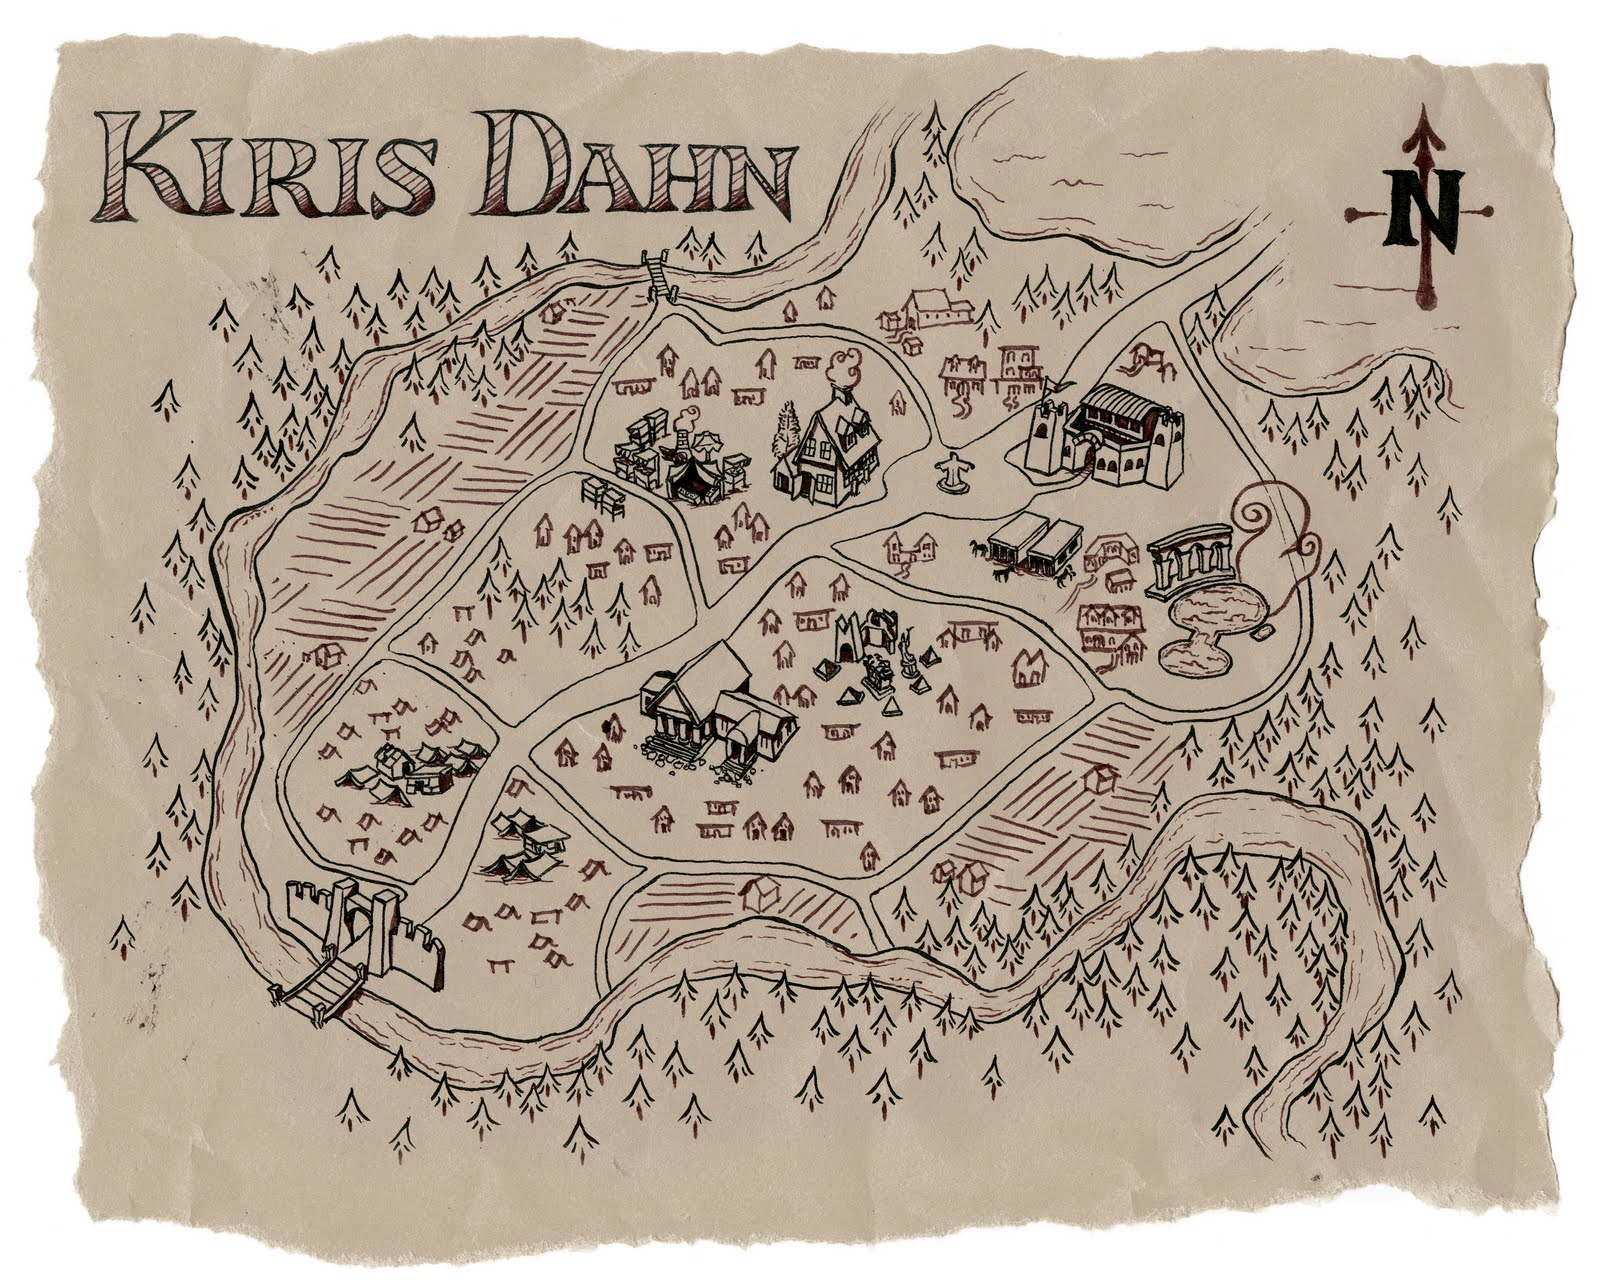 Kiris dahn map full size